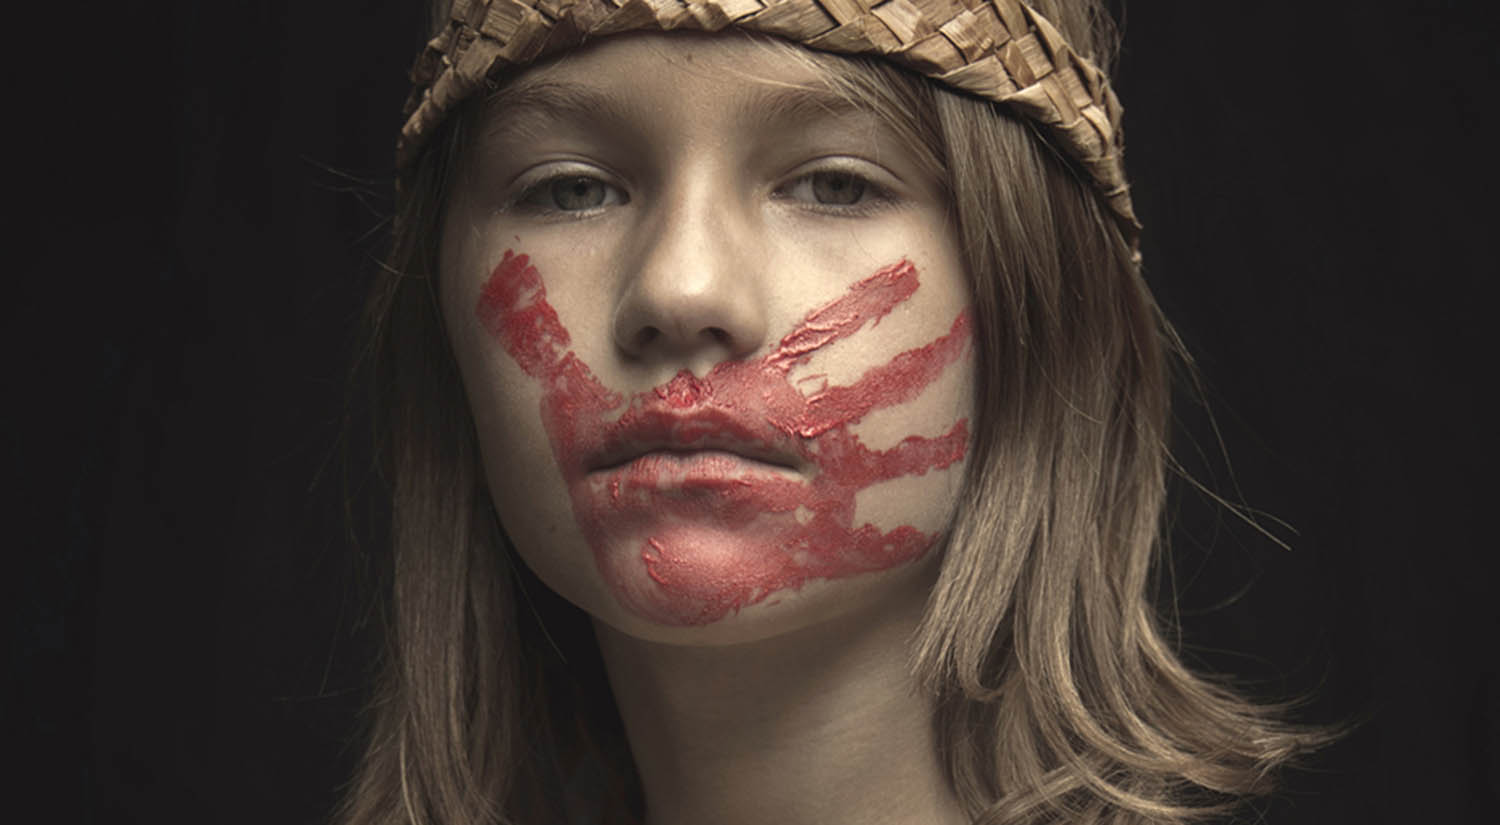 A young girl wears a red handprint across her mouth in honor of America's Missing and Murdered Indigenous Women